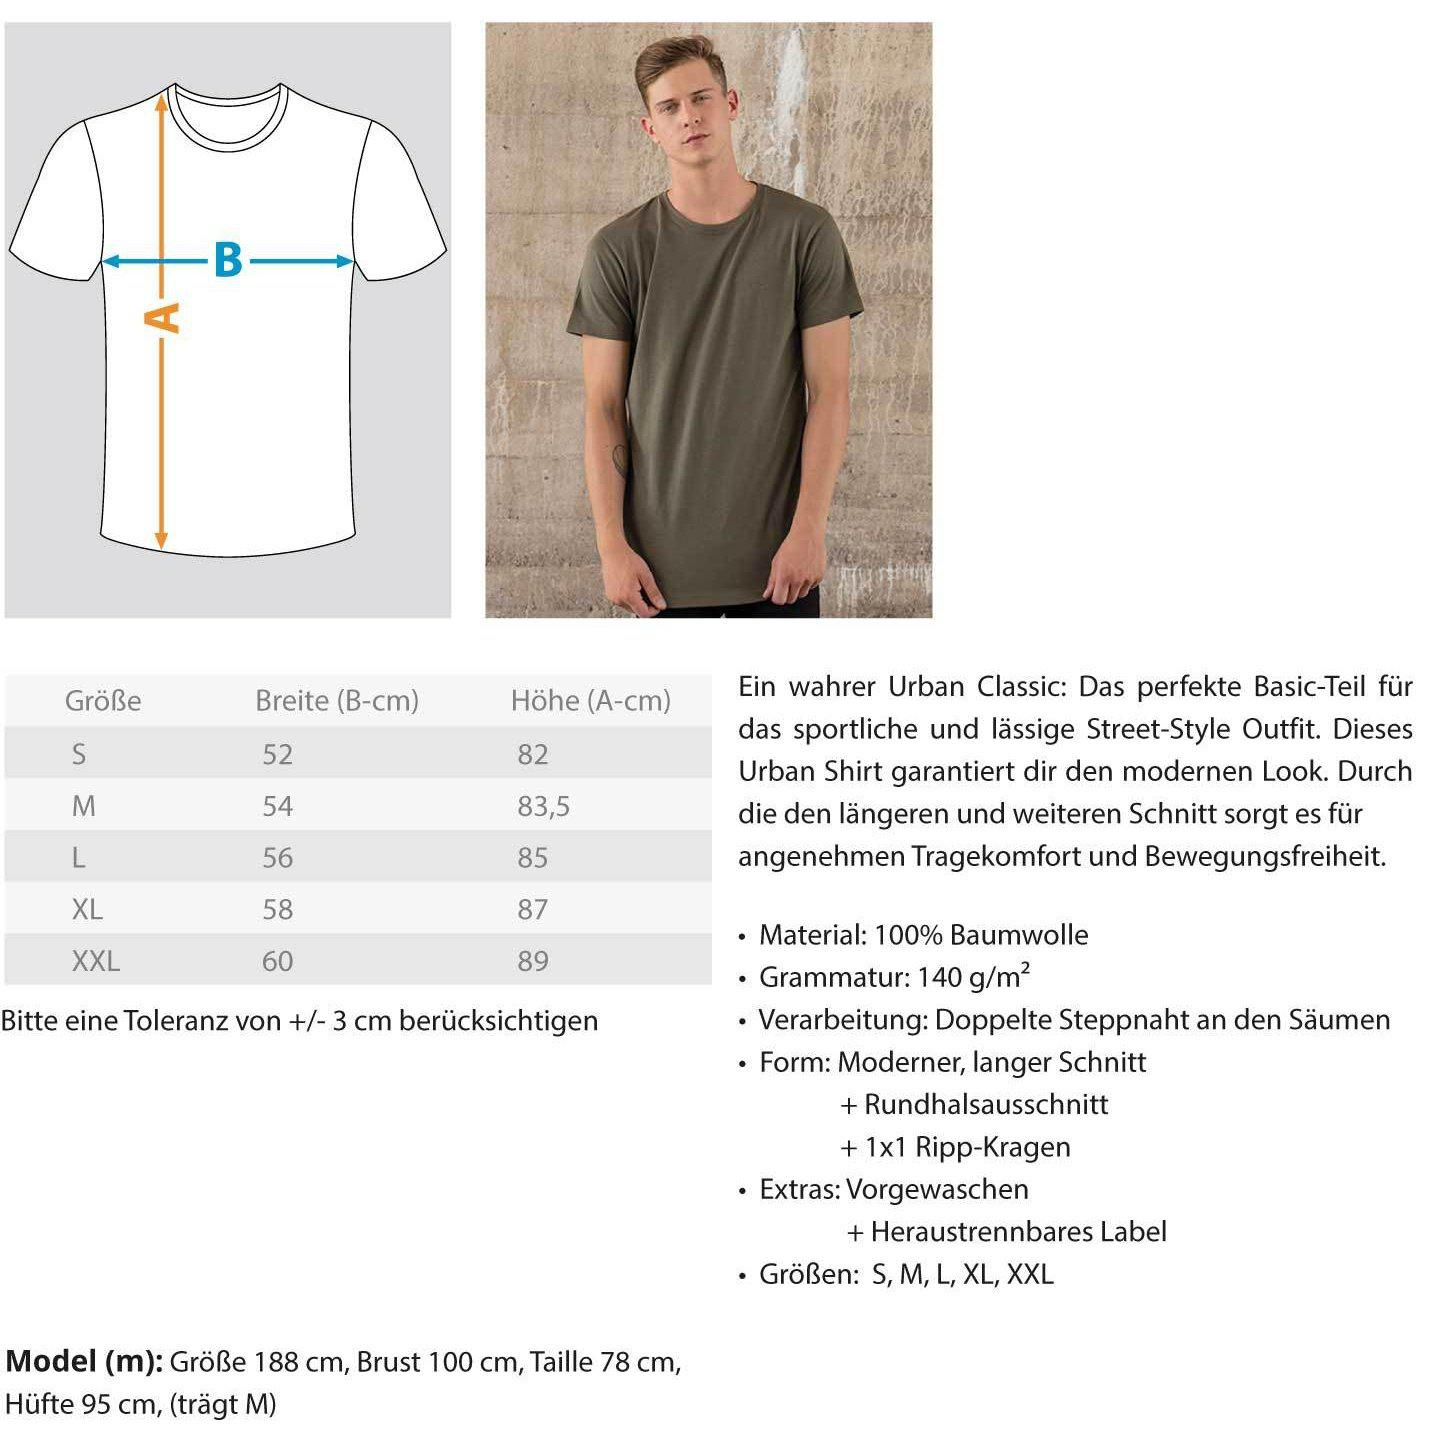 "Stylisches Rave On!® ""Raver"" Shirt w - Herren Long Tee Men Long Tee - Rave On!® der Club & Techno Szene Shop für Coole Junge Mode Streetwear Style & Fashion Outfits + Sexy Festival 420 Stuff"